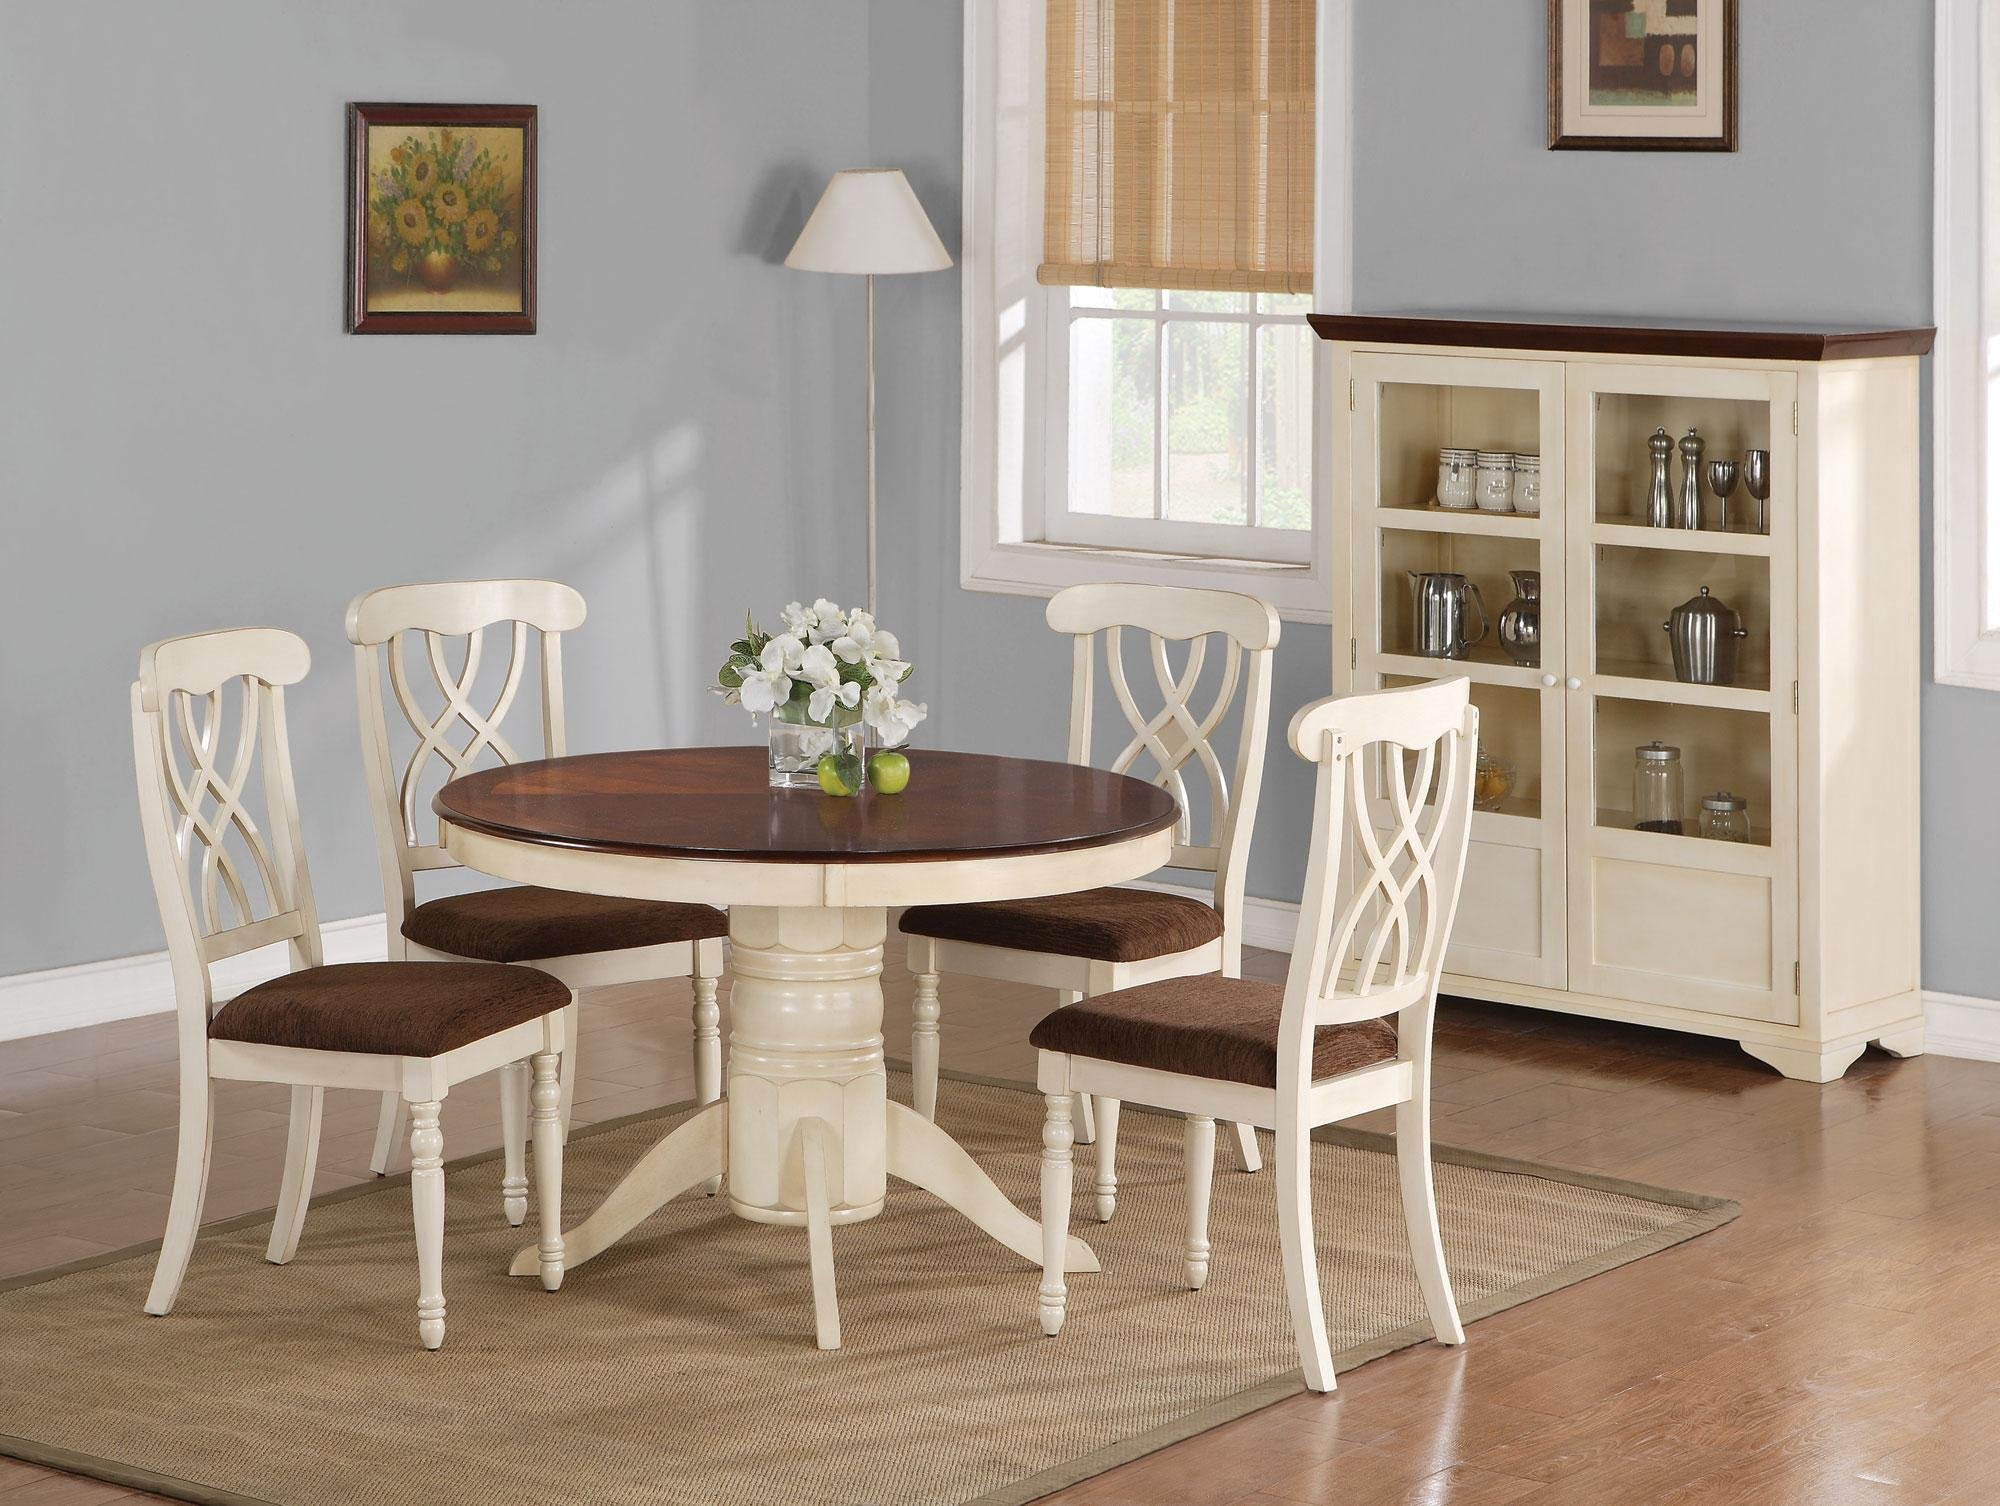 White Round Wooden Kitchen Table With Chairs And Flower Brown Carpet Standing Lamp At Room Corner White Cabinet On Grey Wall Painted